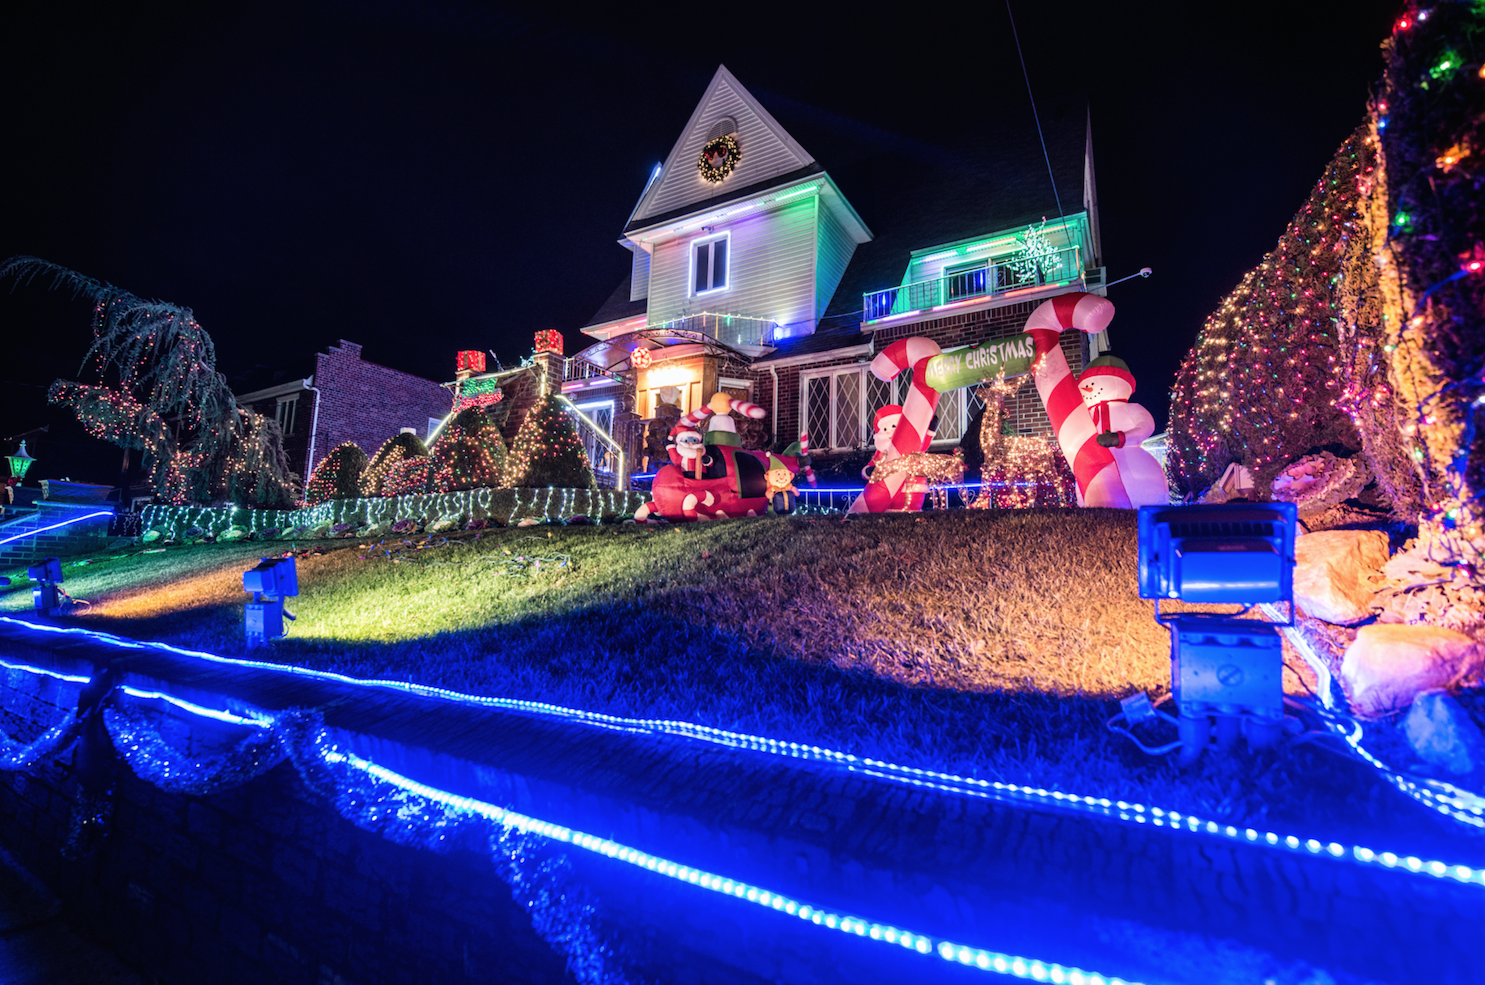 Dyker Heights Christmas Lights Tour 2019 Dyker Heights Christmas Lights 2019 Guide With Great Tours